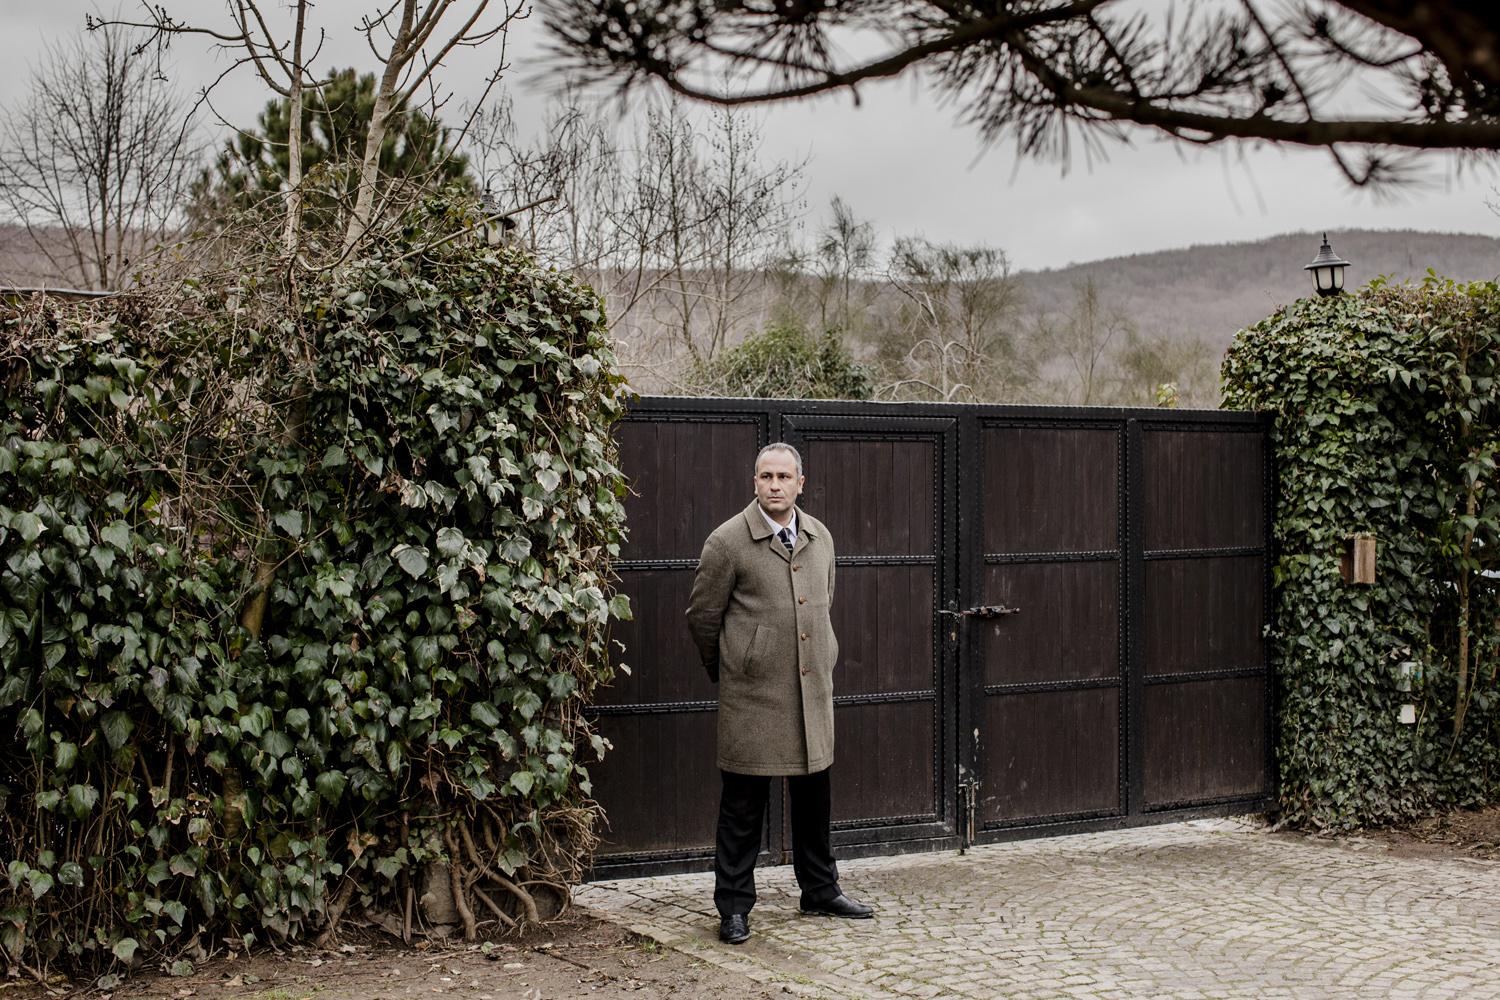 A man from a private security firm stands guard at the home of a wealthy Istanbul resident, February 2013.